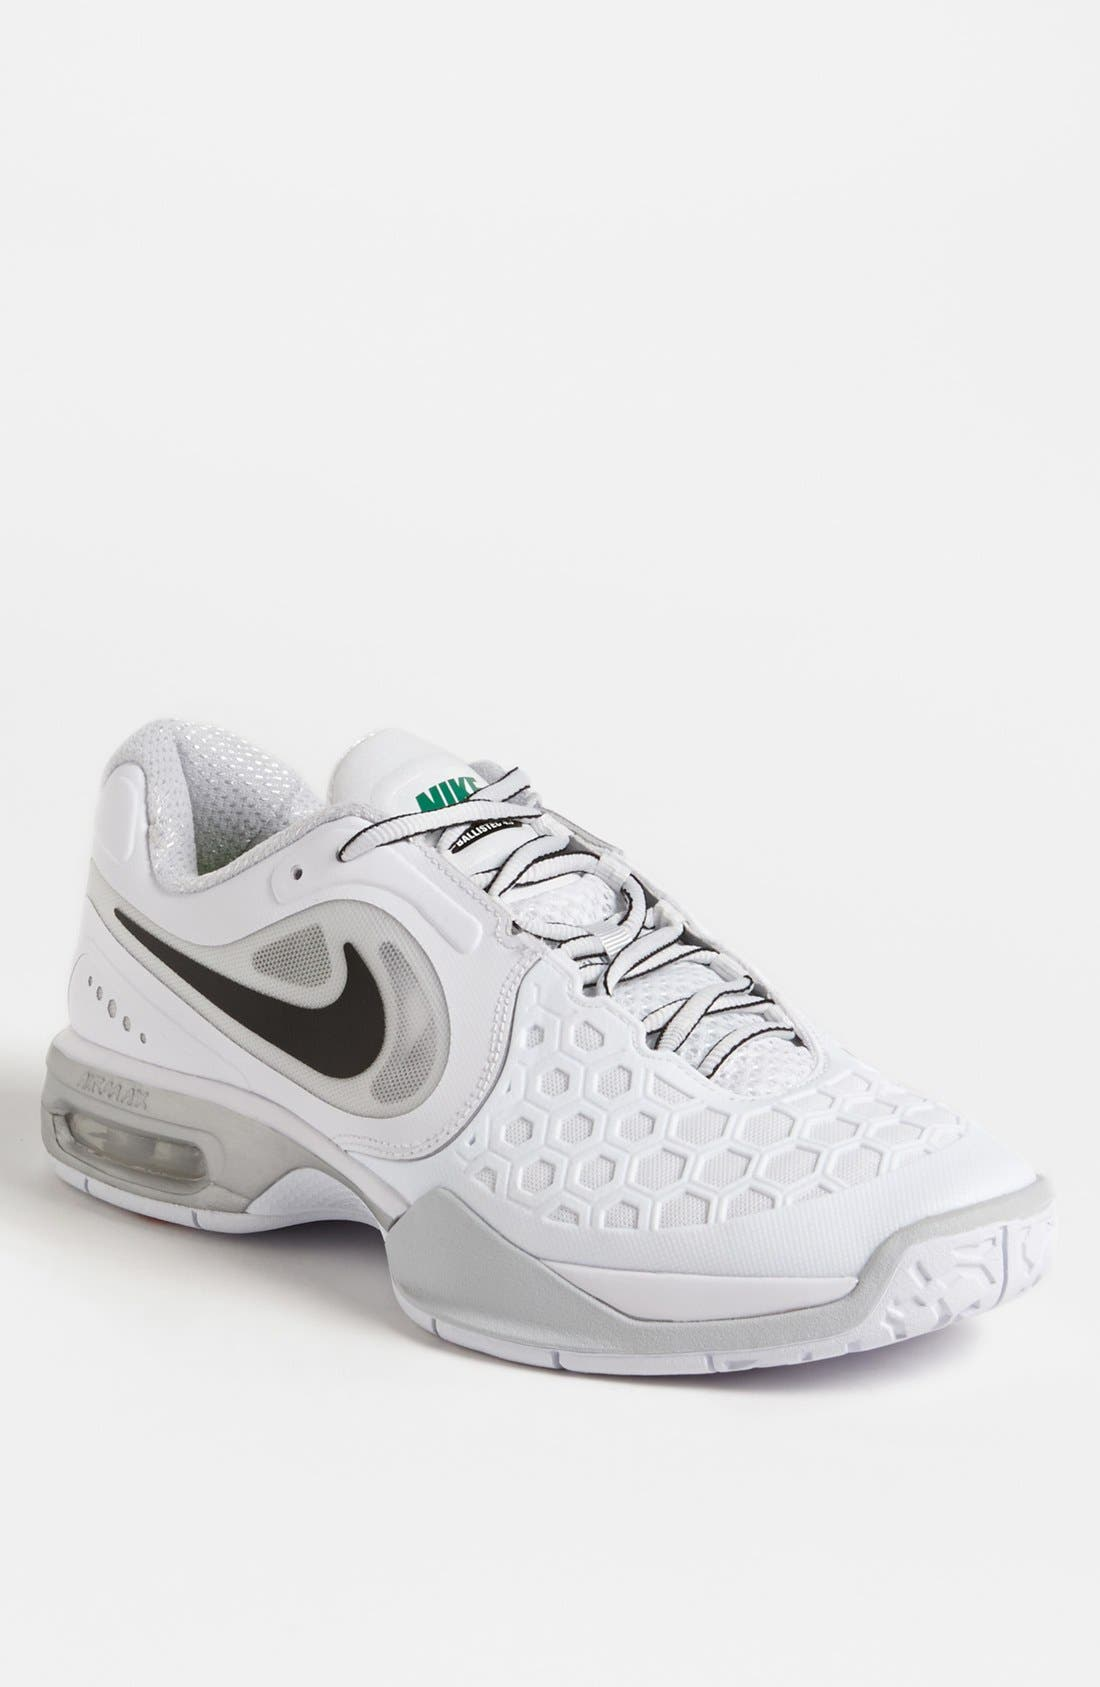 Main Image - Nike 'Air Max Court Ballistec 4.3' Tennis Shoe (Men)